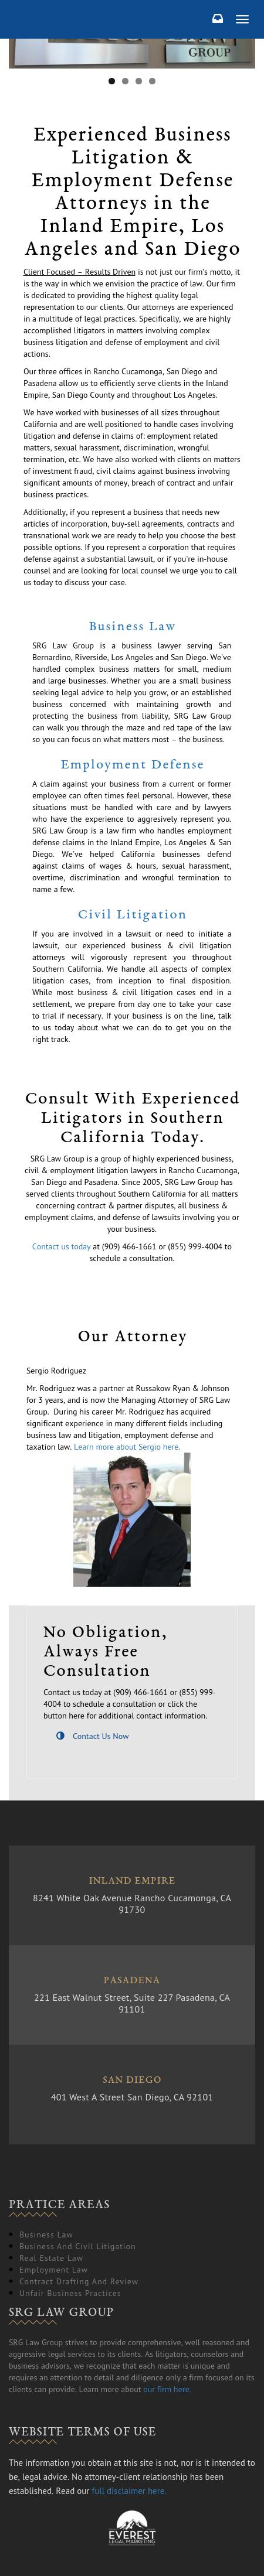 SRG Law Group - Rancho Cucamonga CA Lawyers